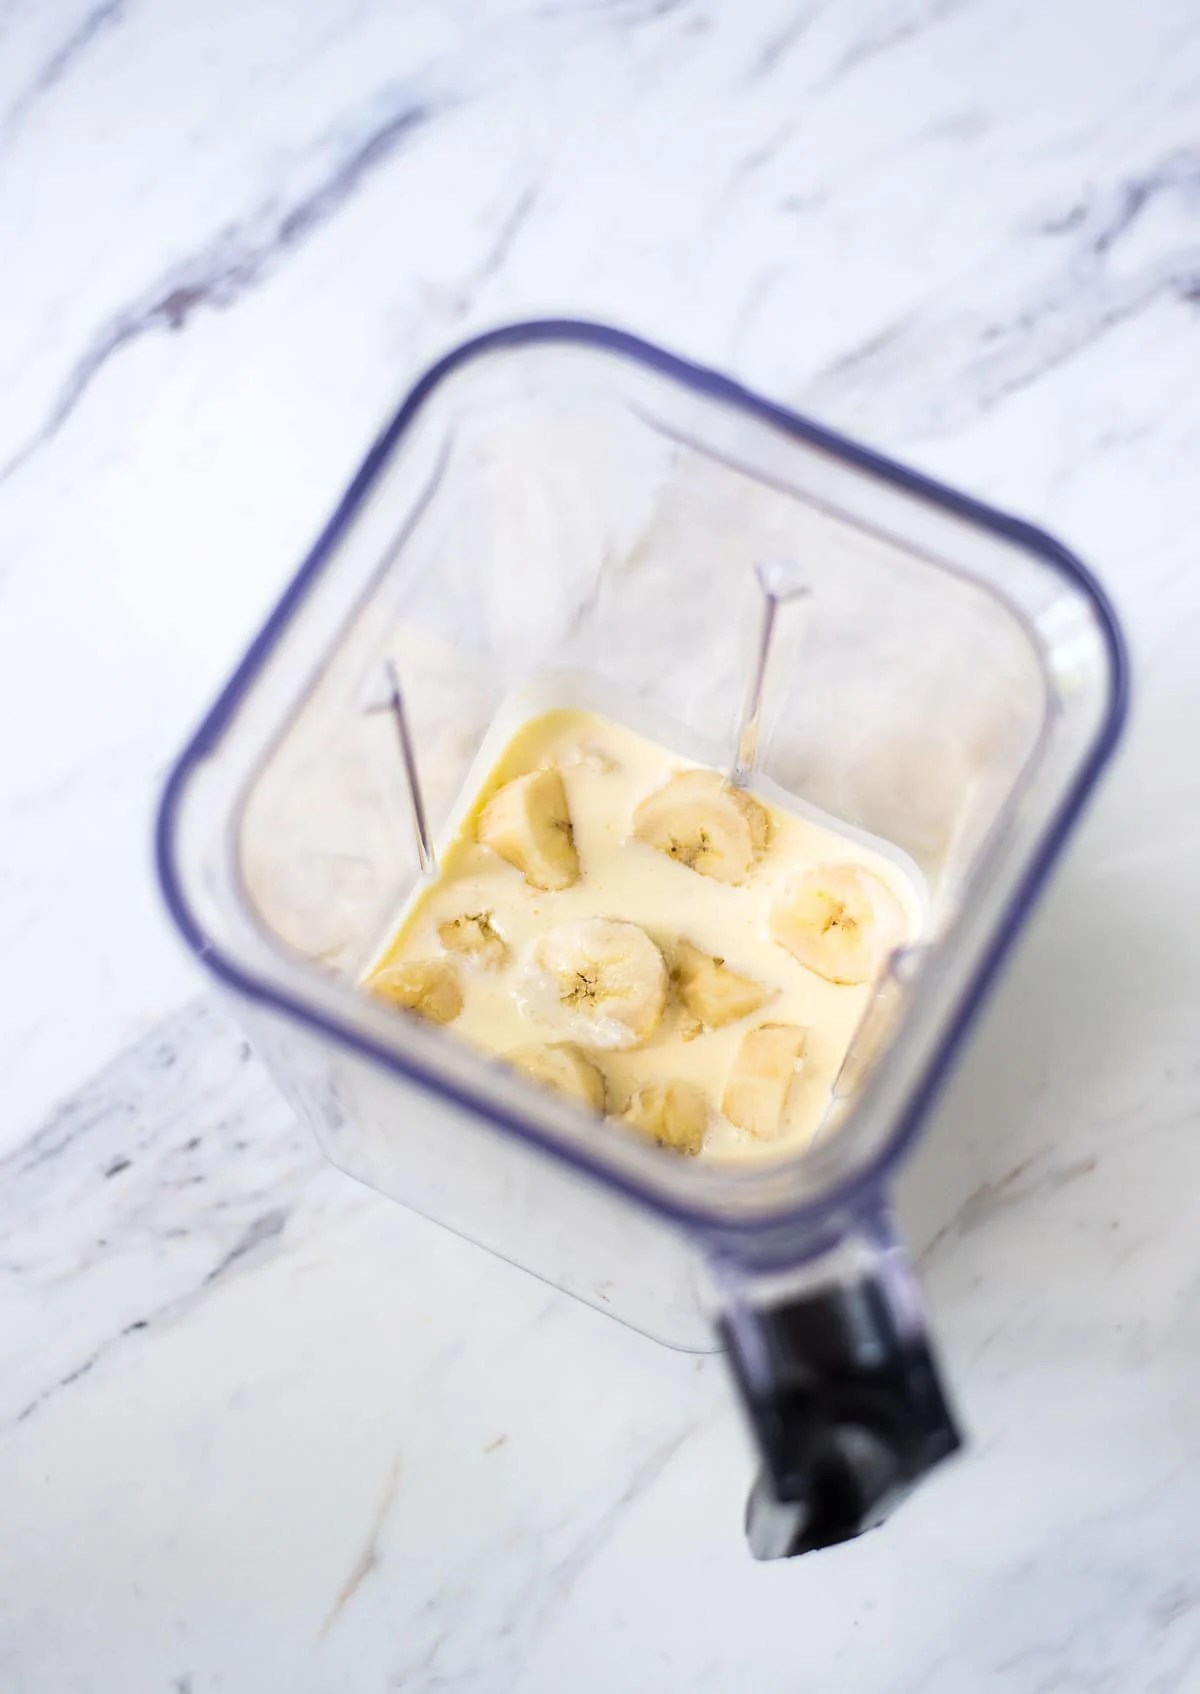 Bananas and ice cream custard in a Vitamix blender